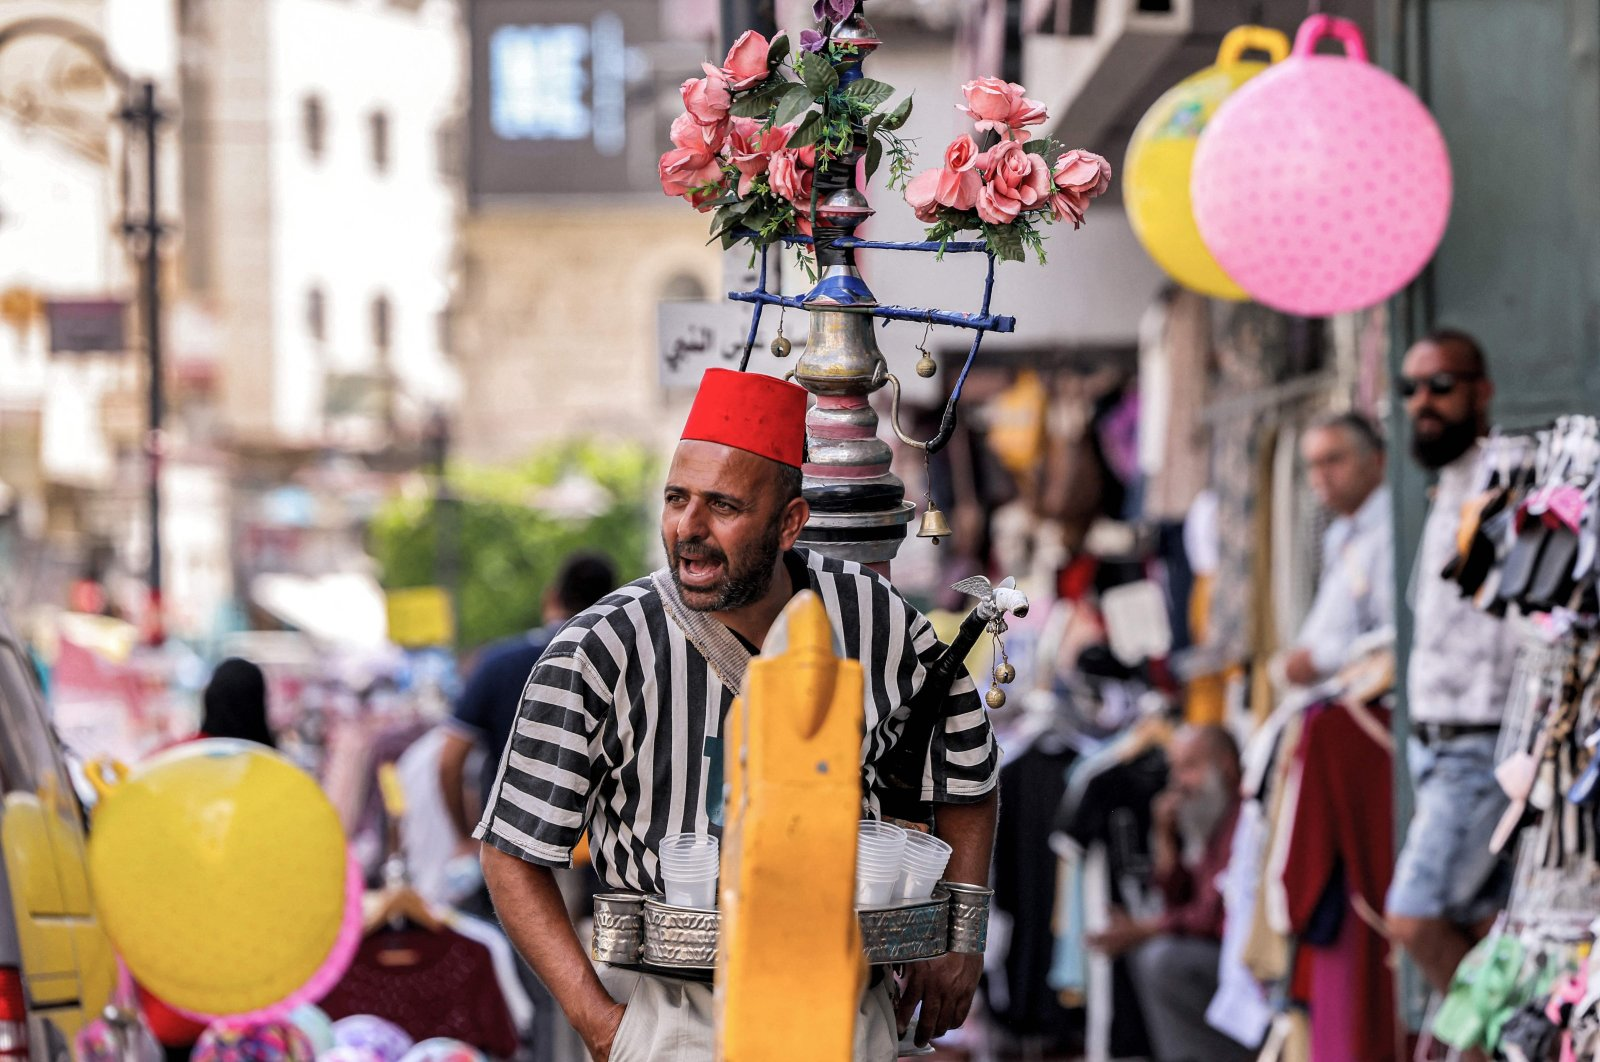 A Palestinian fresh juice street vendor calls for customers at a market in the old city of Bethlehem in the Israeli-occupied West Bank, Sept. 14, 2021. (AFP Photo)